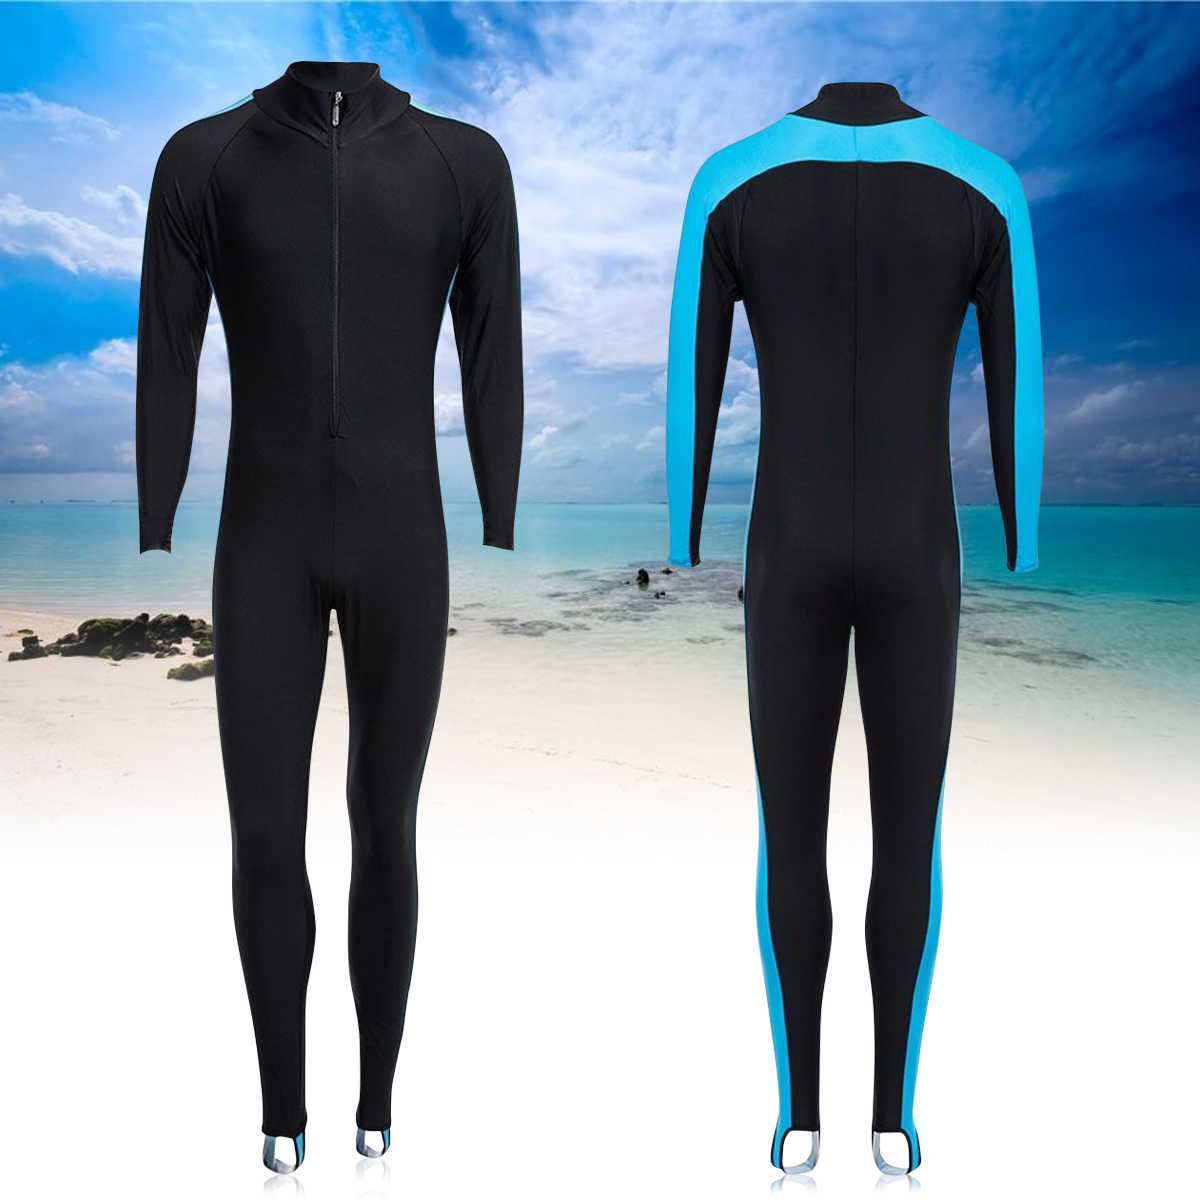 8938ed1eb8 ... 3MM Mens WetSuit S-XL Full Bodysuit Super Elasticity Diving Suit For Swimming  Surfing Snorkeling. RELATED PRODUCTS. 1x Wet Suit Unisex Waterproof Sun ...